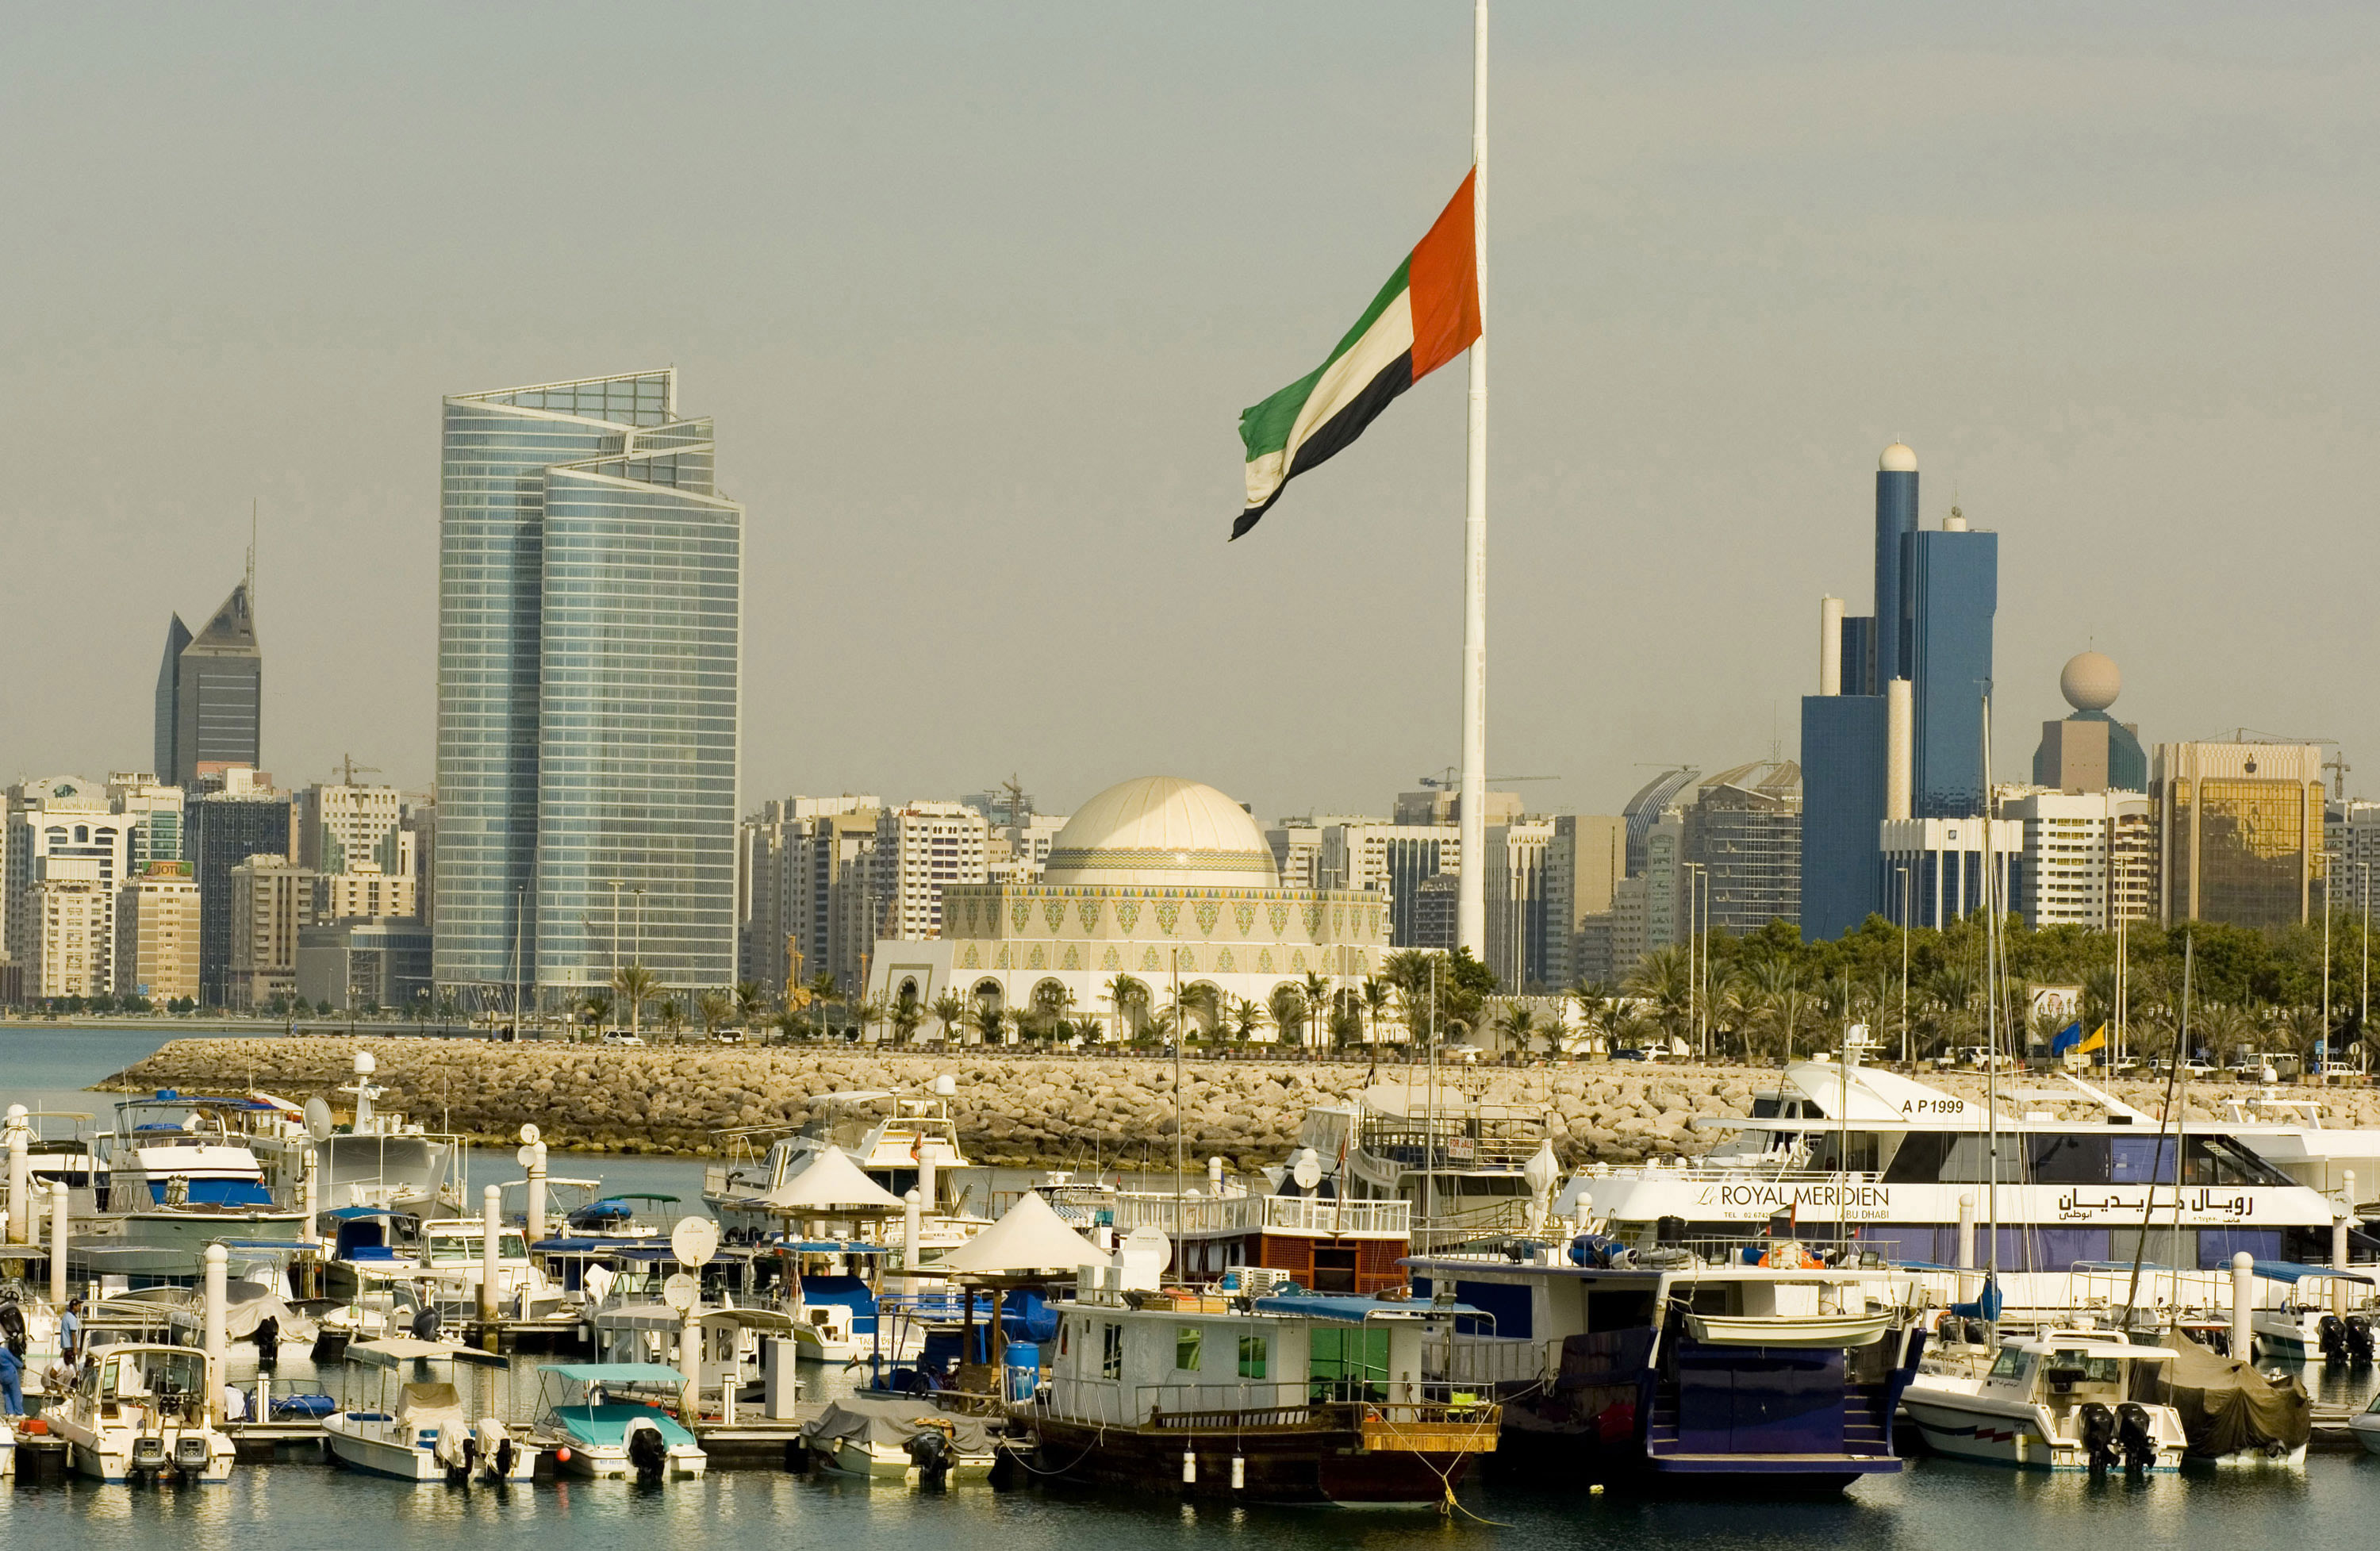 Abu Dhabi spending cuts may have exacerbated oil-led